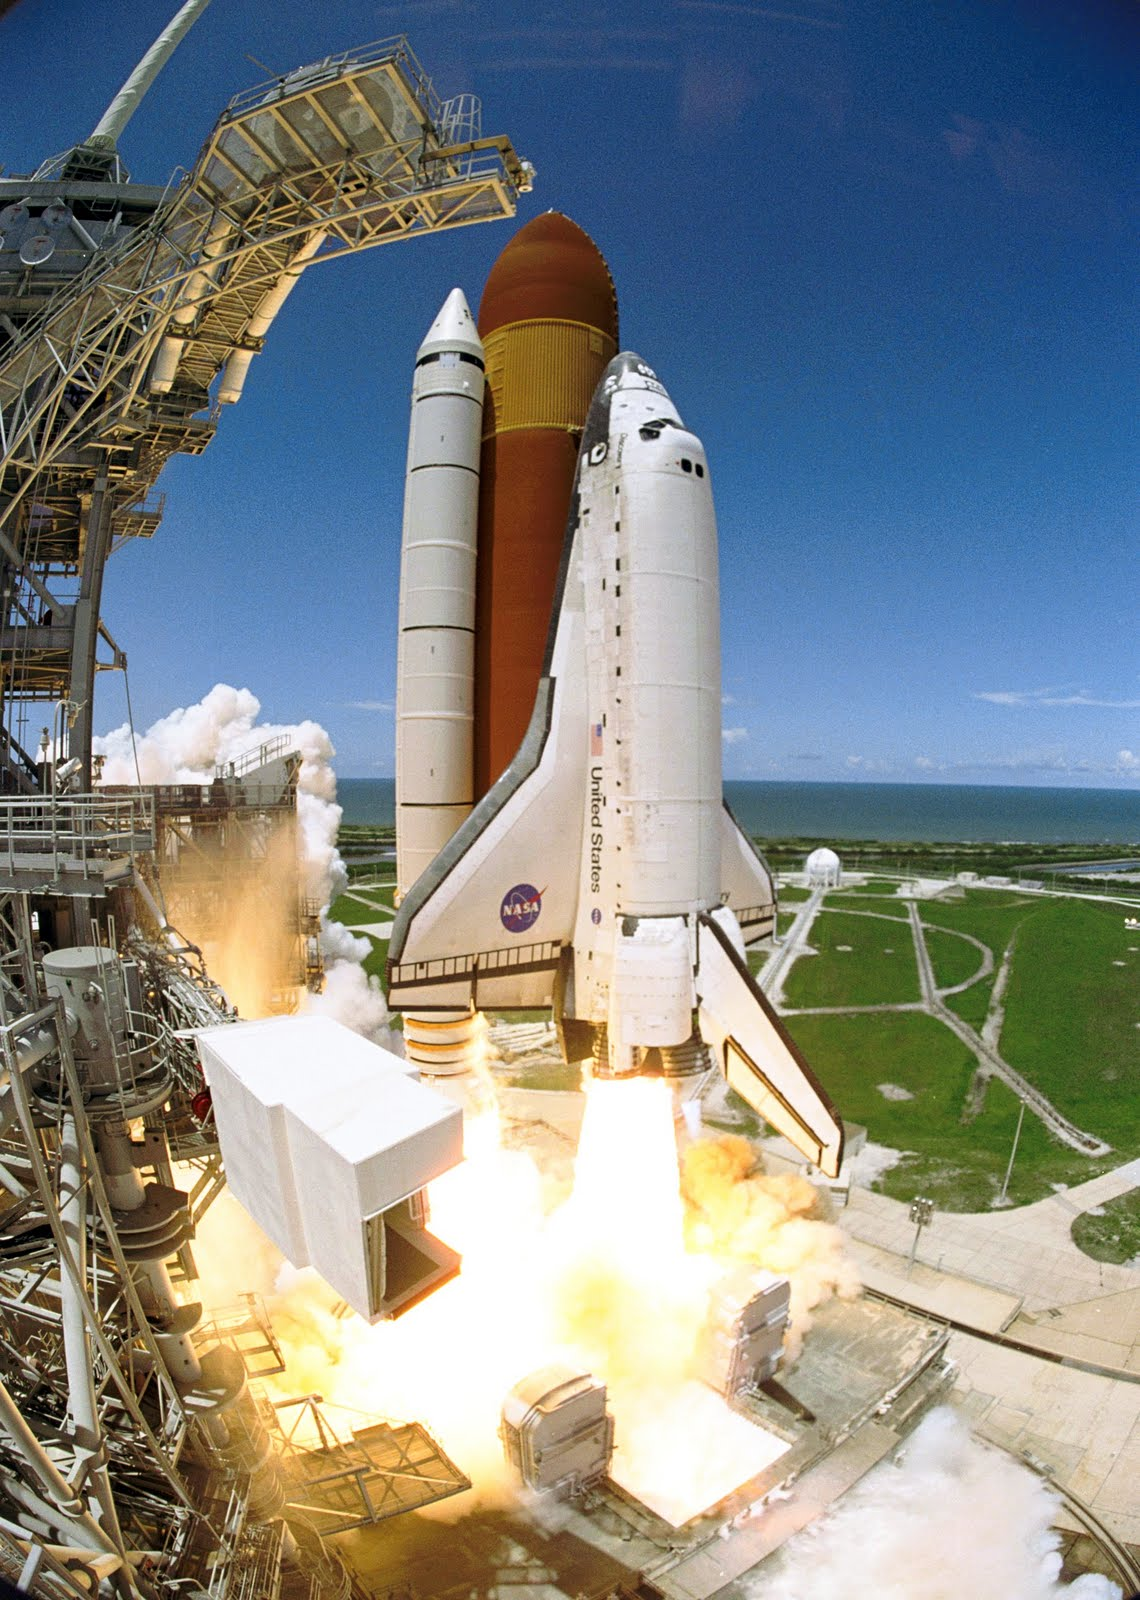 space shuttle gallery - photo #8